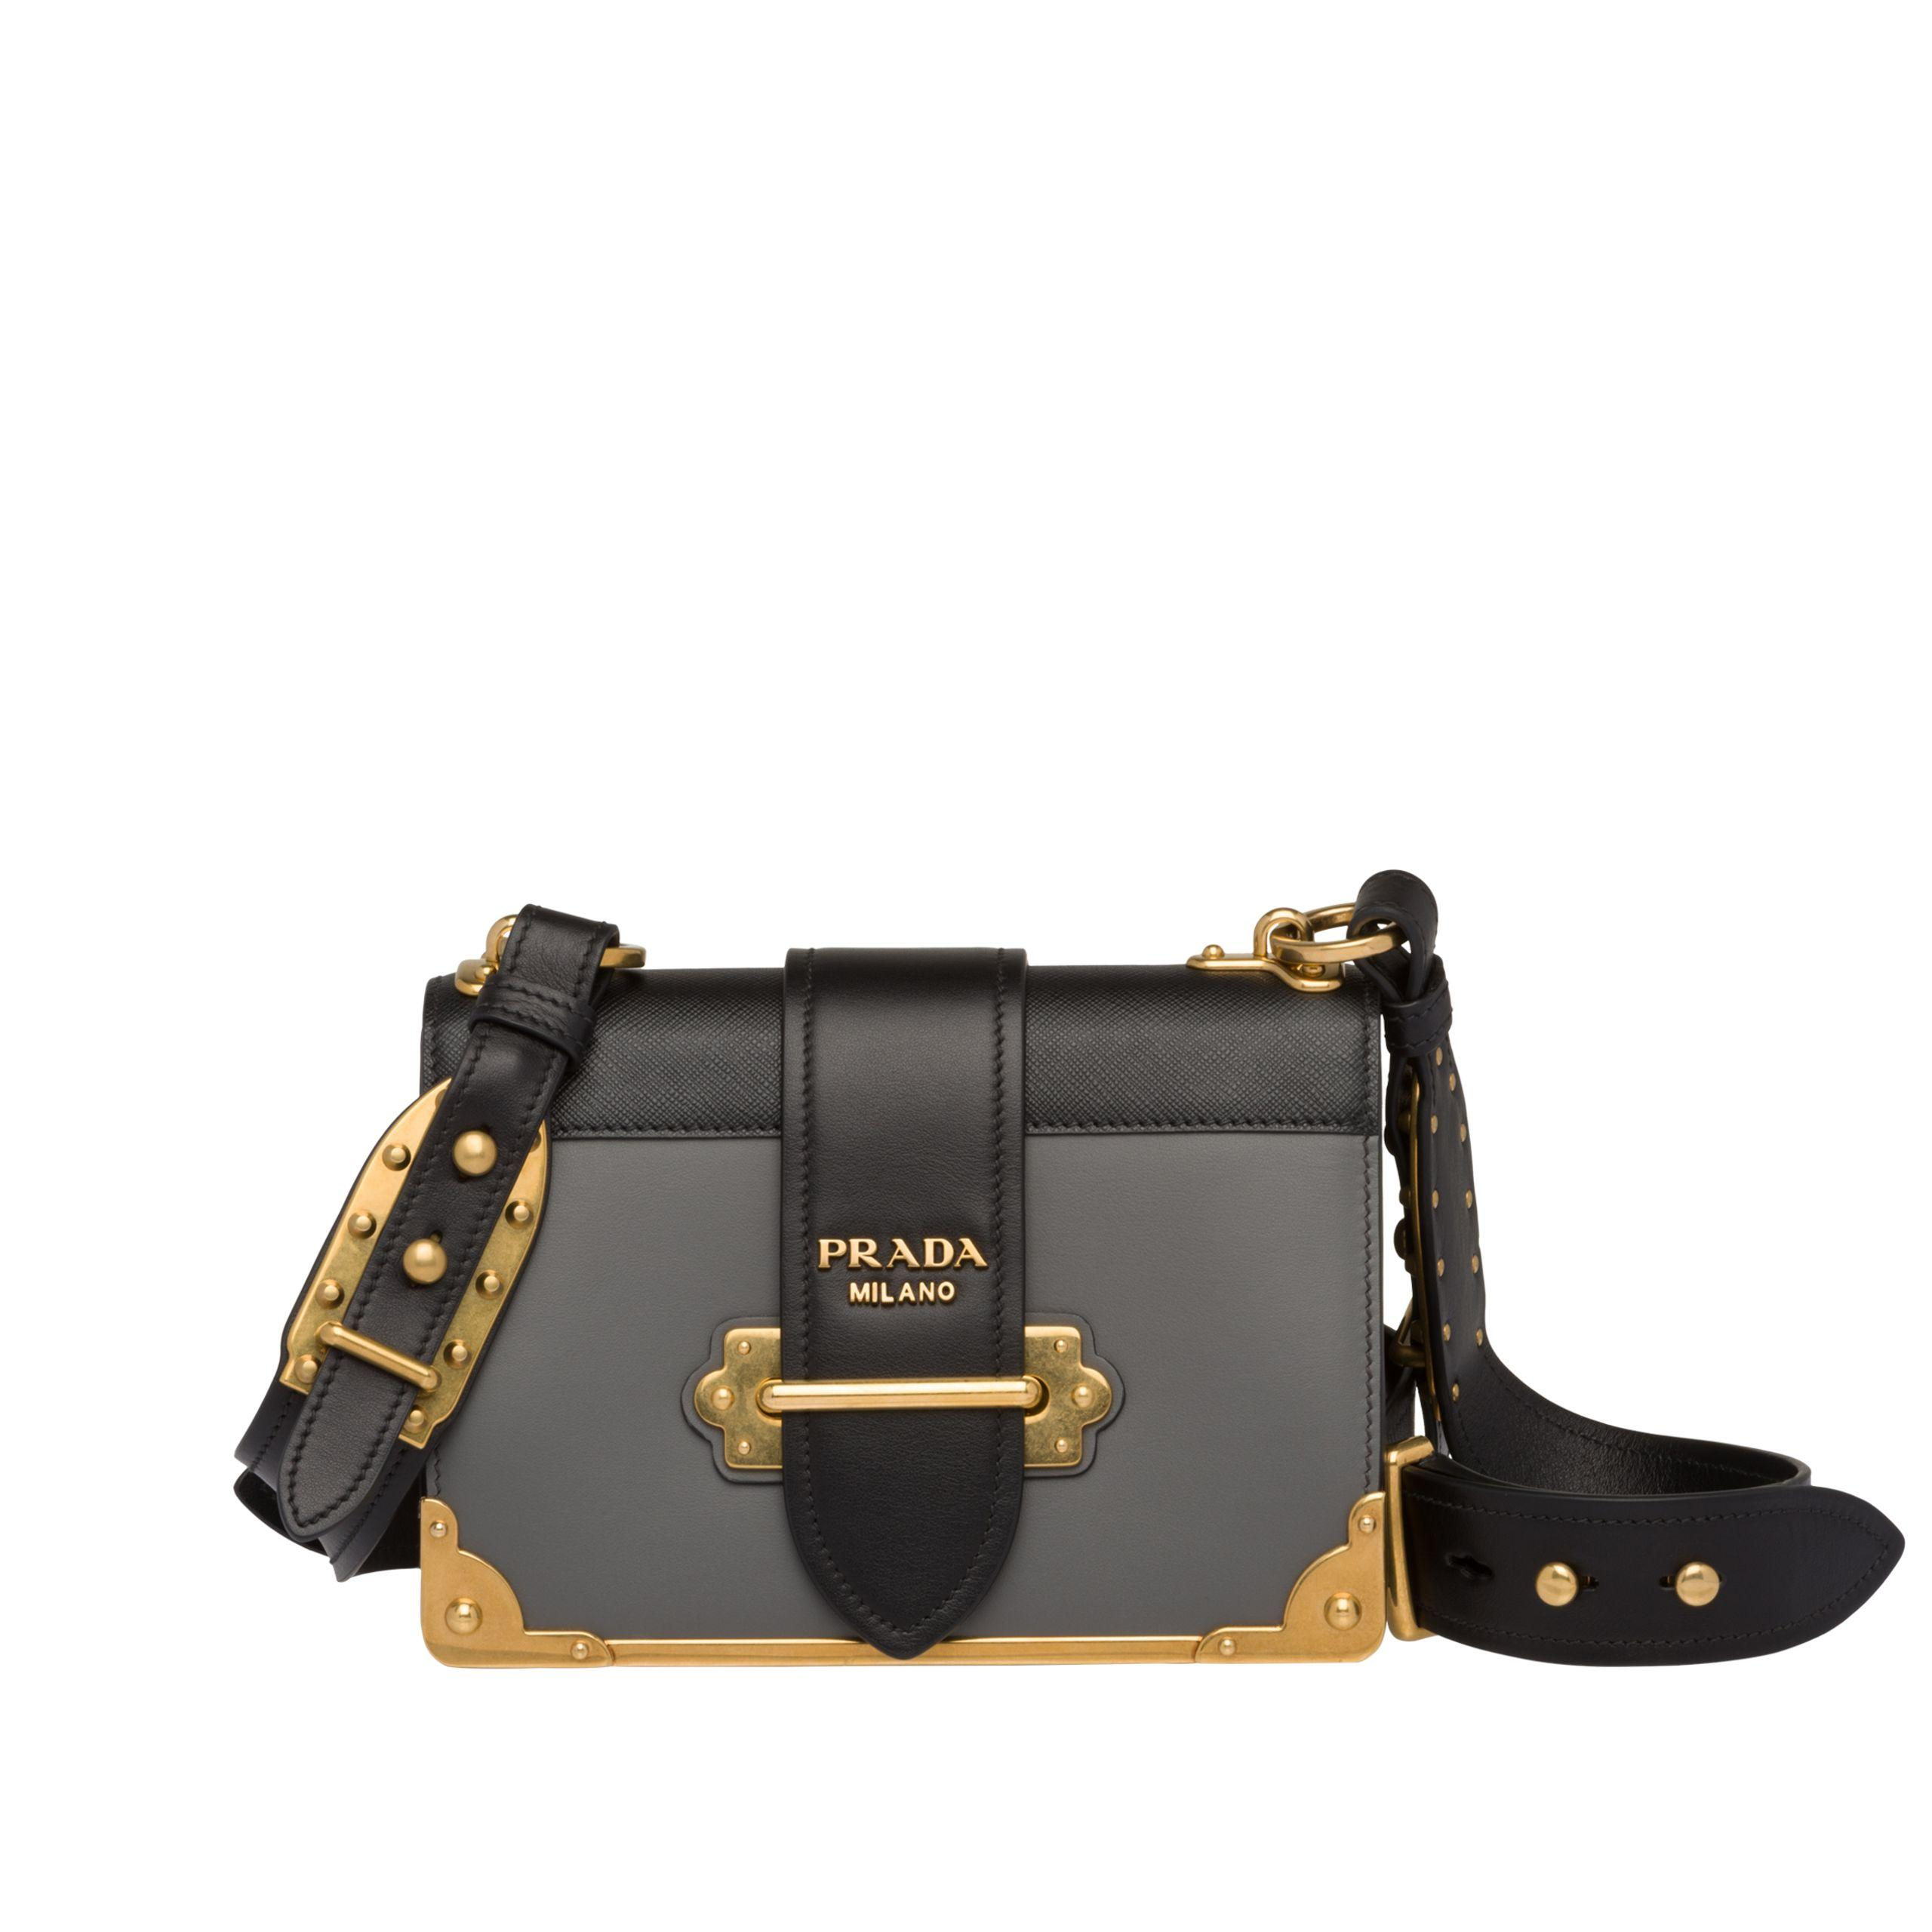 d37136a4674c64 Prada. Women's Black Cahier Leather Shoulder Bag. $2,950 From Orchard Mile